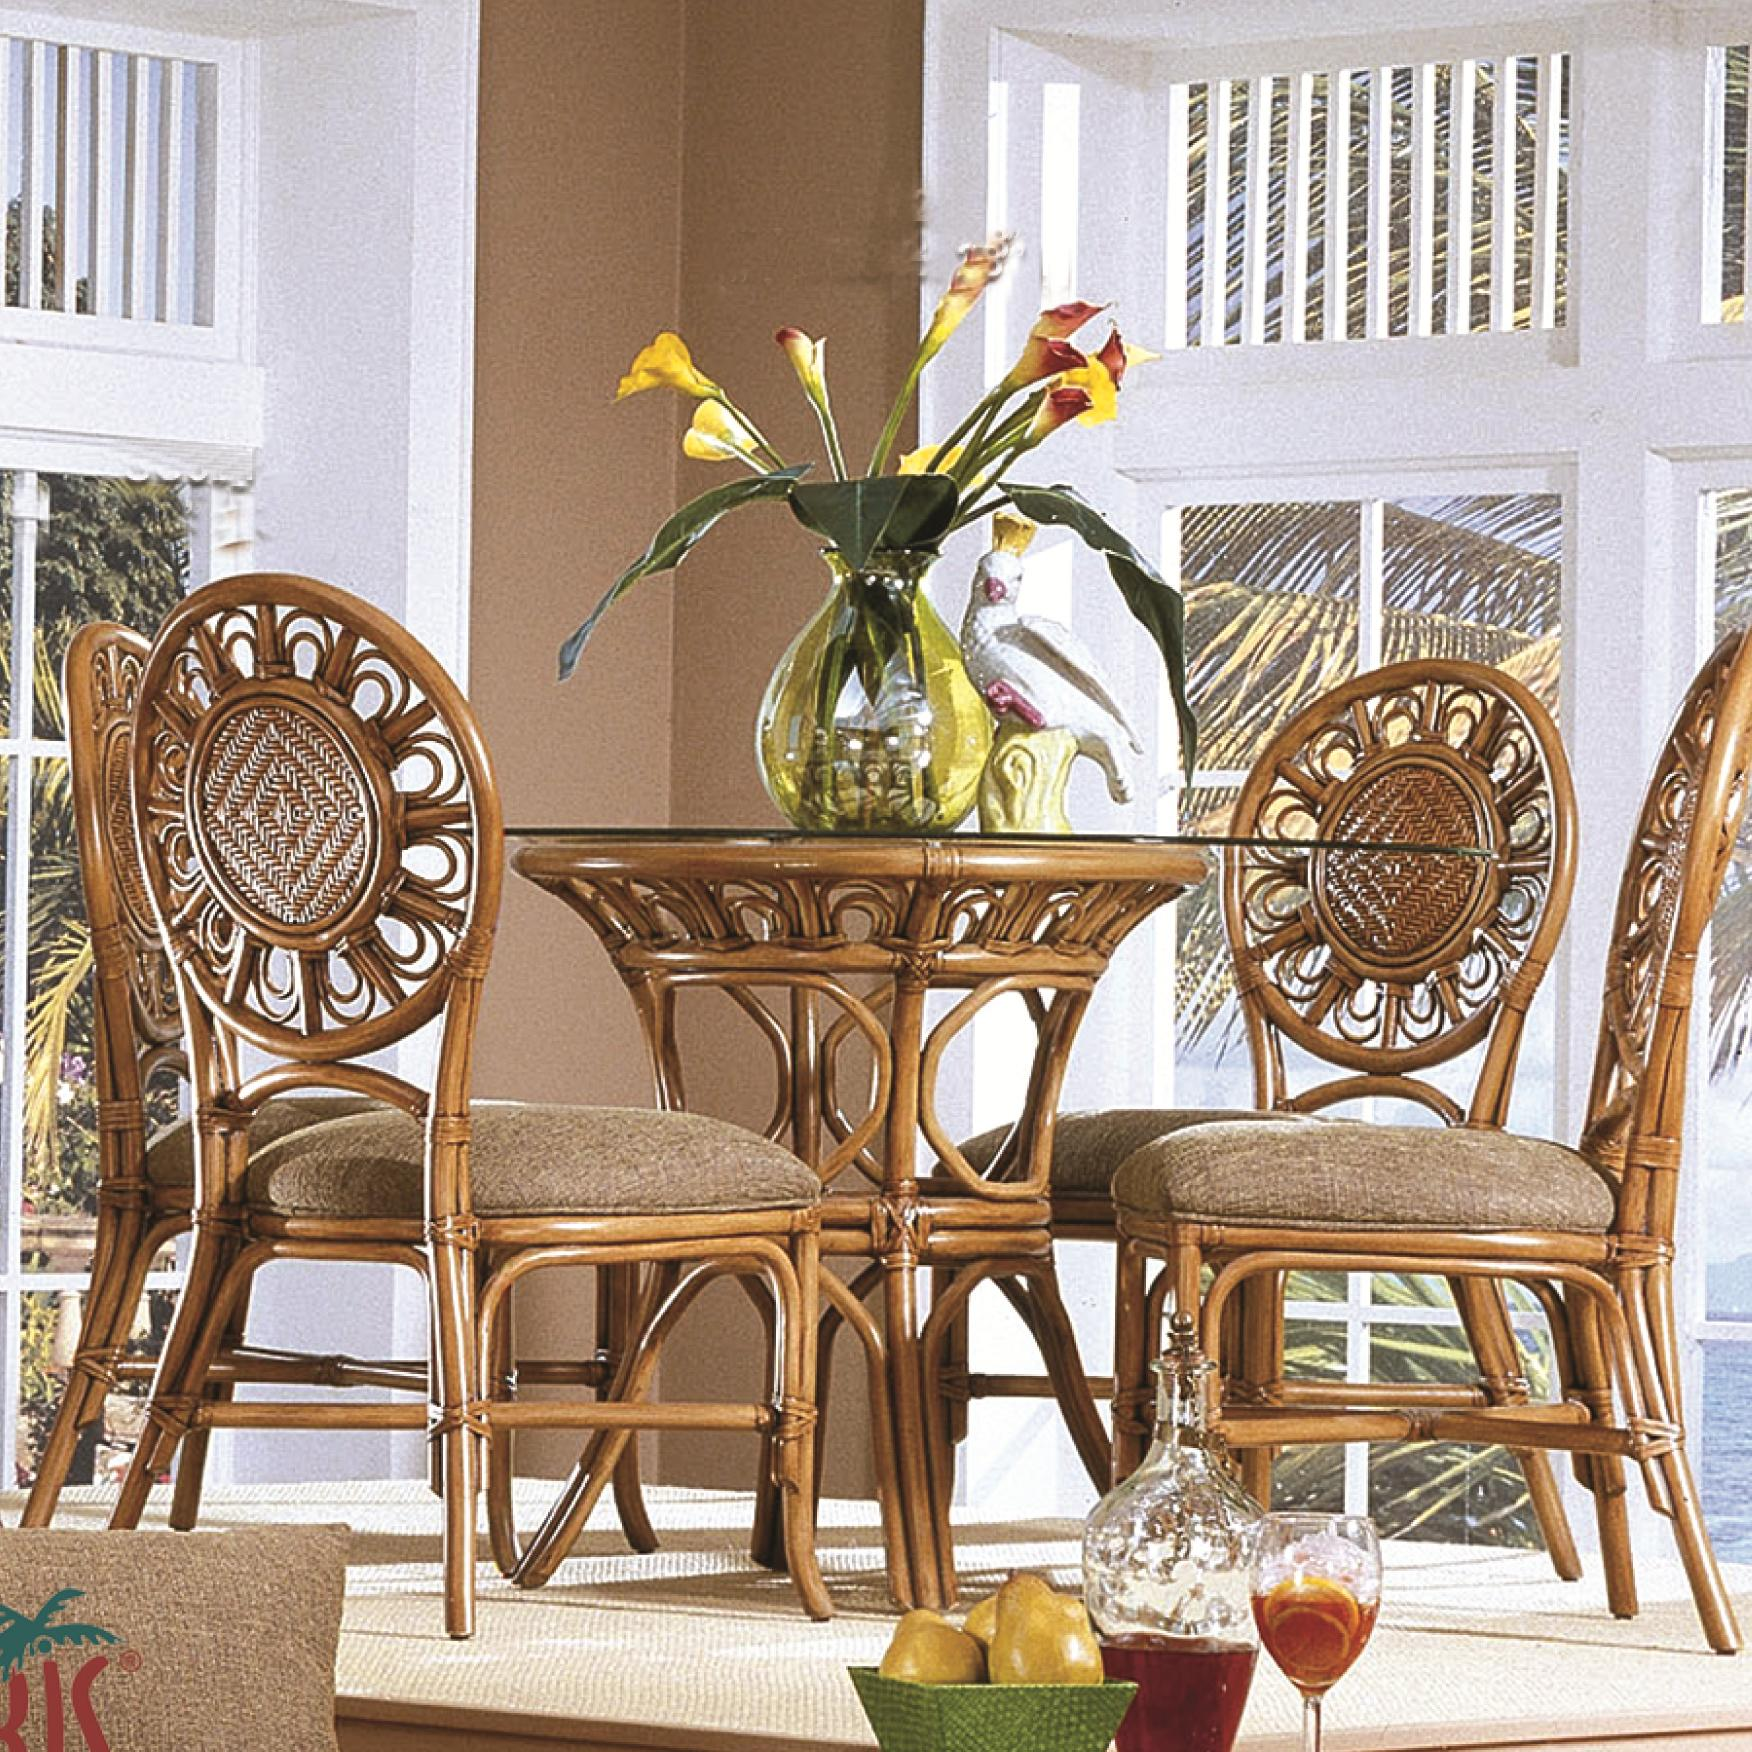 321 Collection Glass Top Table With Four Side Chairs by Capris Furniture at Esprit Decor Home Furnishings